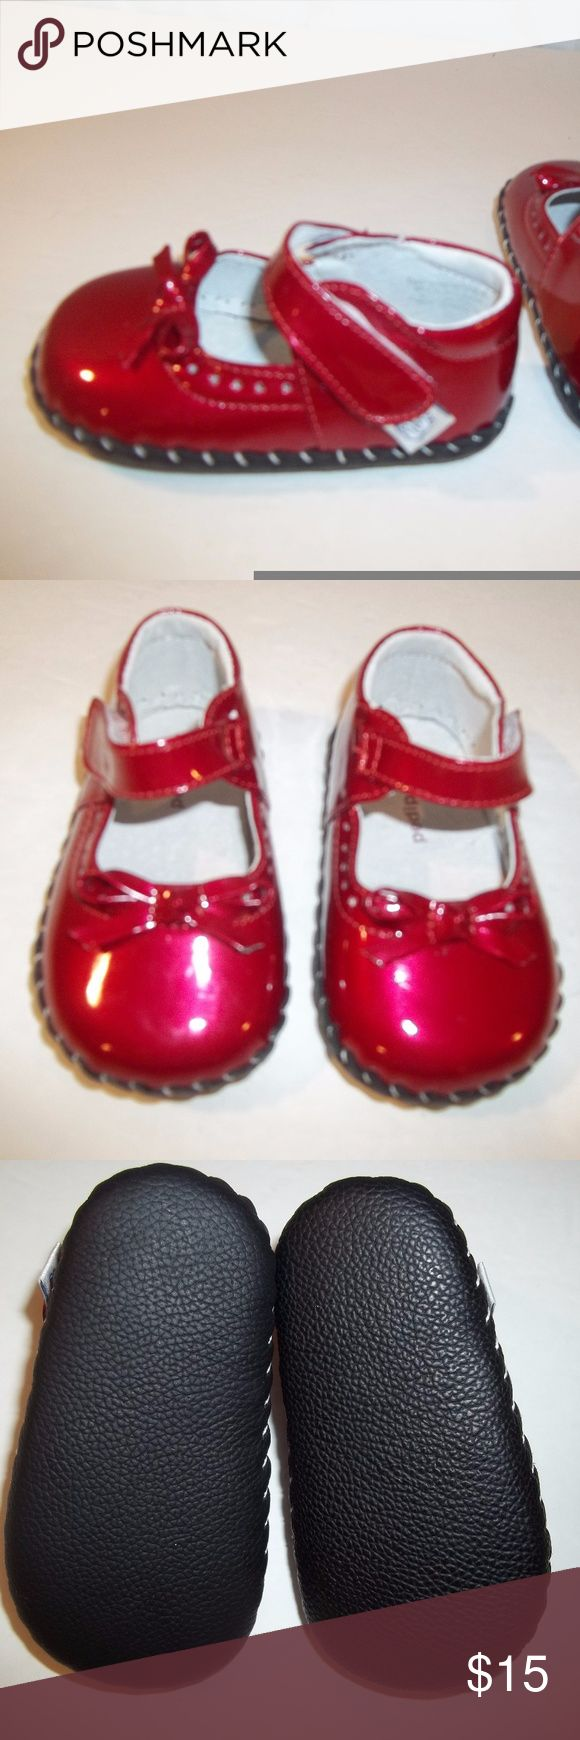 Pediped Baby Shoes Mary Janes Red Size 6-12 Months Baby Girl's Mary Janes Style Shoes  Brand: Pediped  Size: 6-12 Months  Color: Red  Features: Mary Janes style - bow on top  Soft bottom sole  Material: Unknown  Measurements (Outside bottom)  Top to bottom: 5 inches  Side to side (widest spot): 2.5 inches  Condition: Pre-owned in excellent condition.  Appears to have been worn very little.  **The spots on the pictures are from the flash.** pediped Shoes Baby & Walker